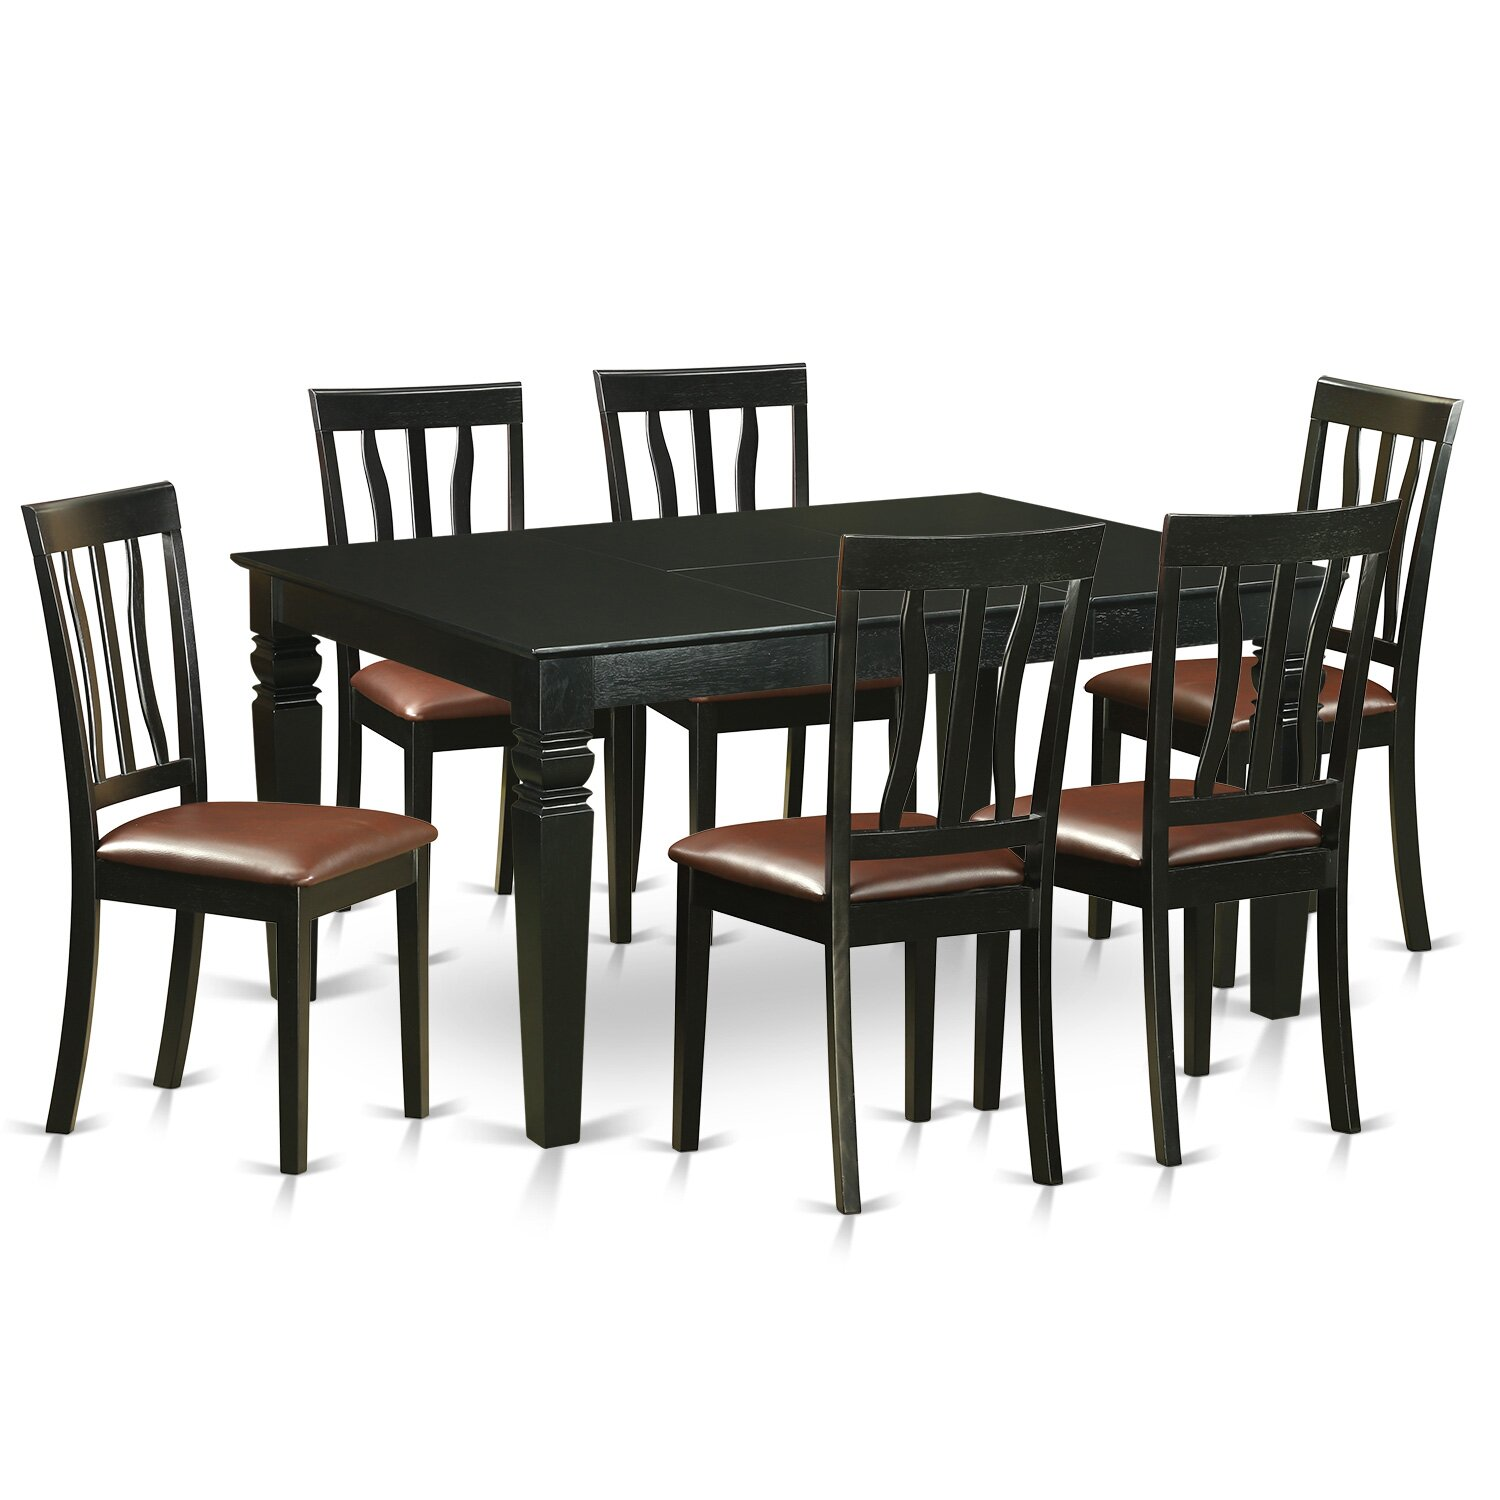 Piece Table Set Dining Table And 6 Dining Room Chairs WEAN7 BLK C